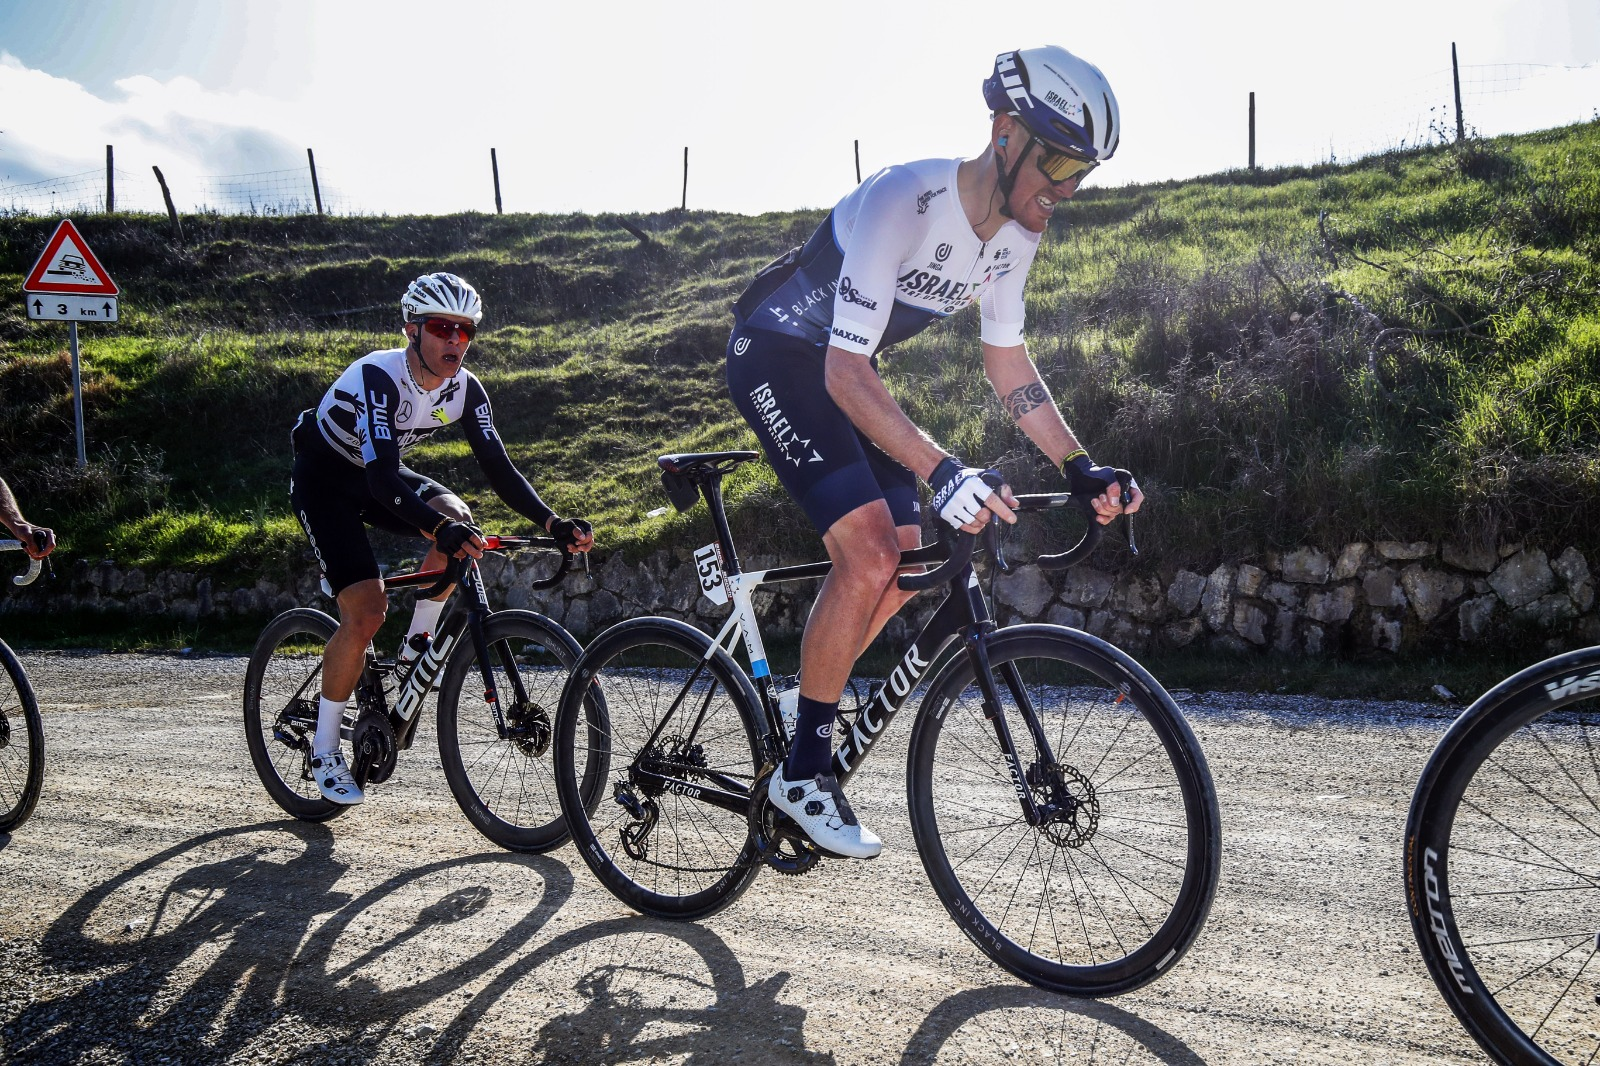 Israel Start-Up Nation experiences challenging and exhausting Strade Bianche